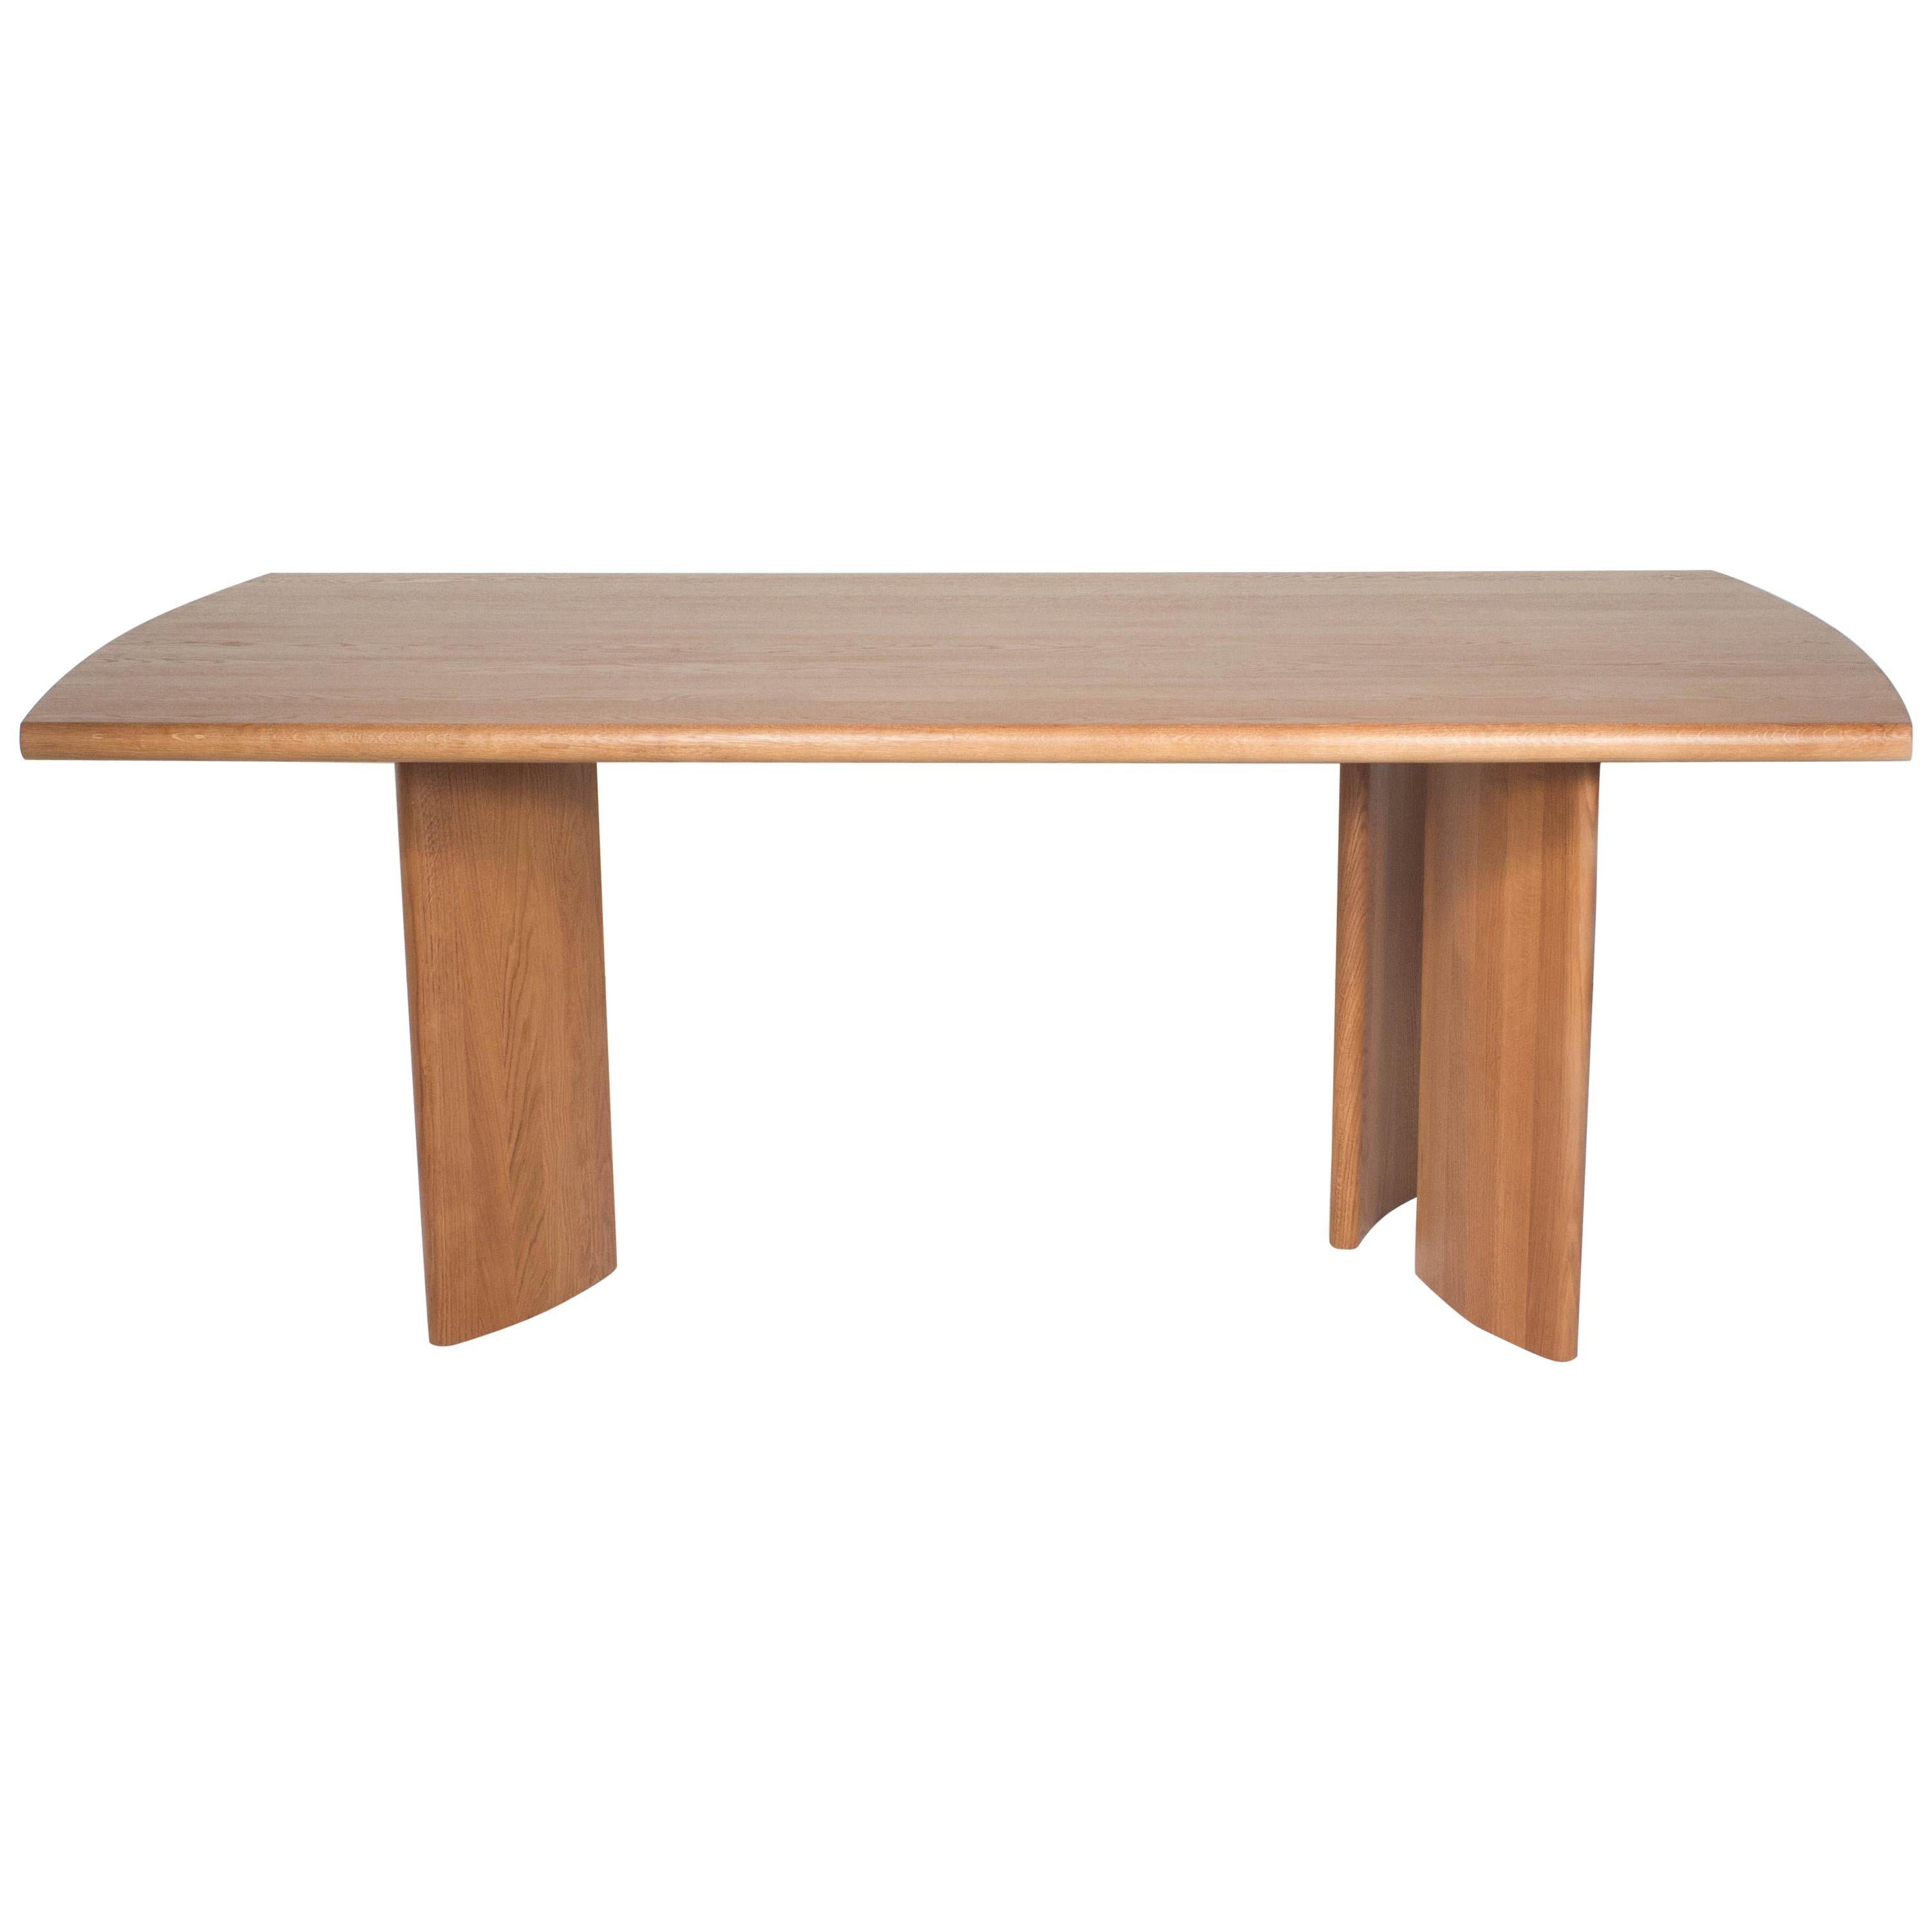 Crest Table, Sienna, Minimalist Dining Table In Wood